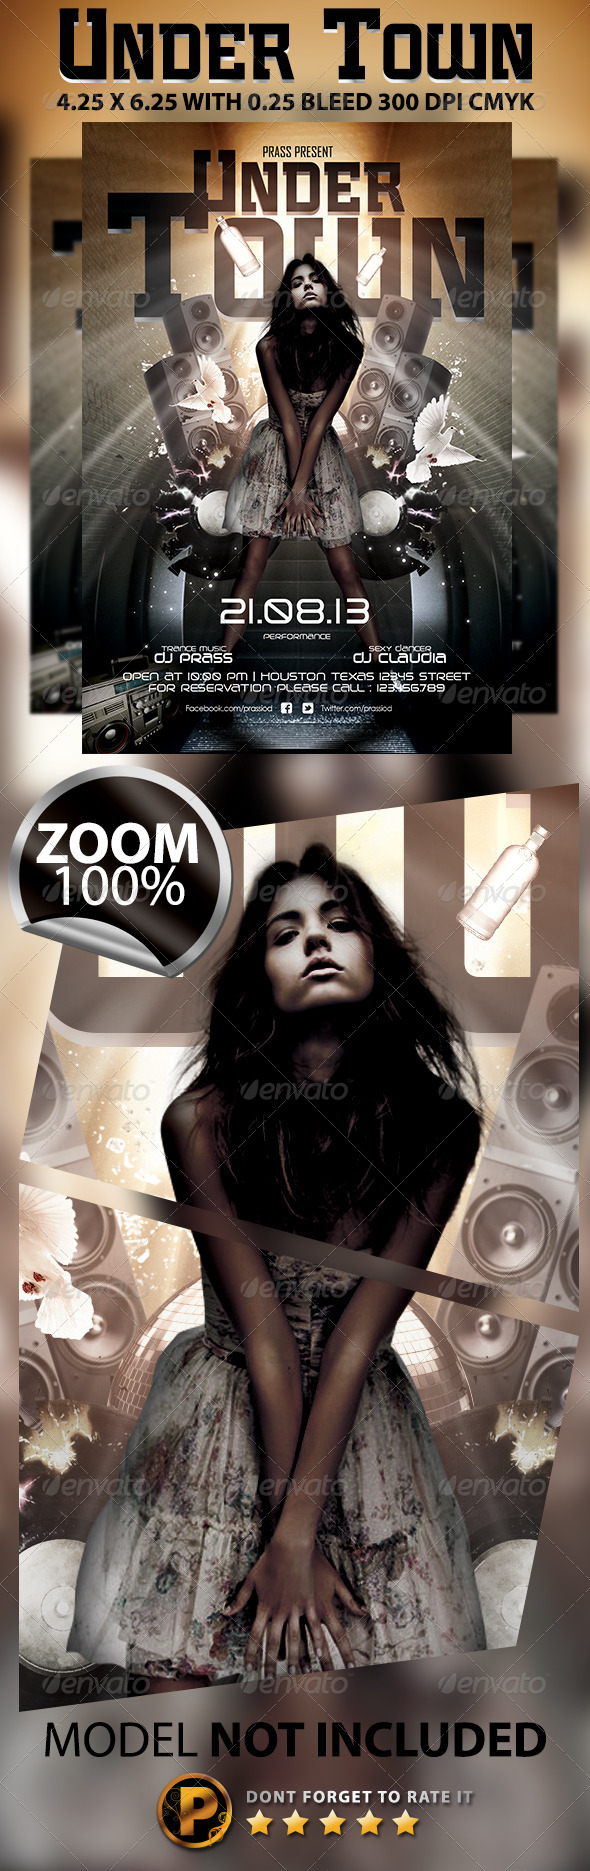 Under Town Flyer Template - Clubs & Parties Events